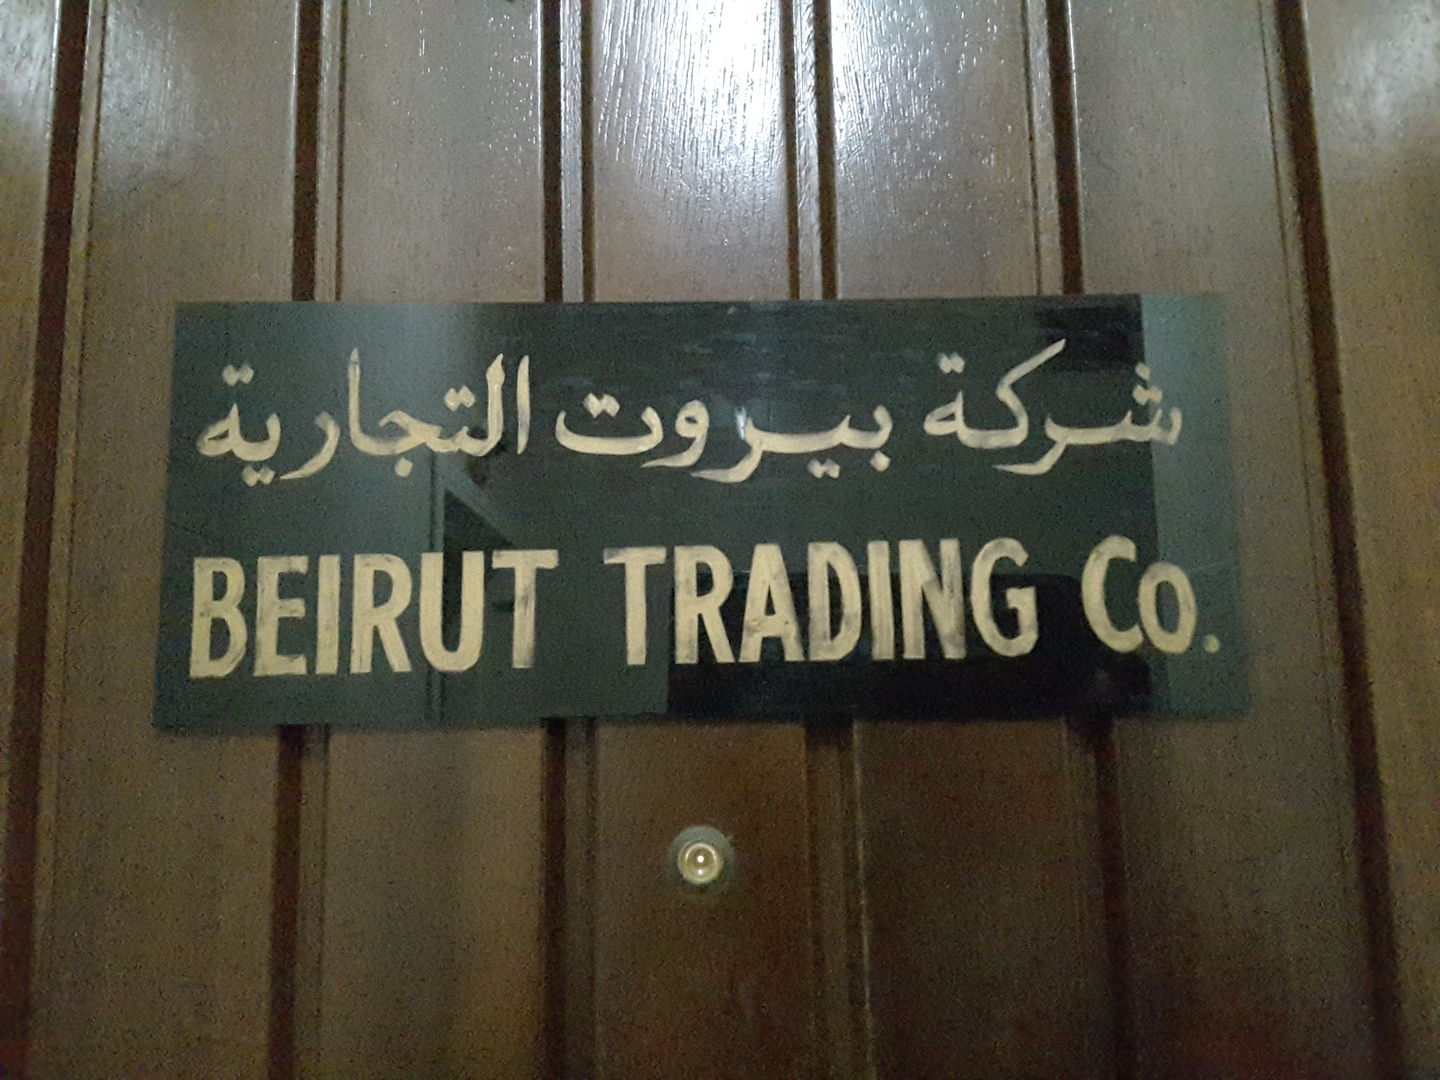 HiDubai-business-beirut-trading-co-b2b-services-food-stuff-trading-al-muraqqabat-dubai-2